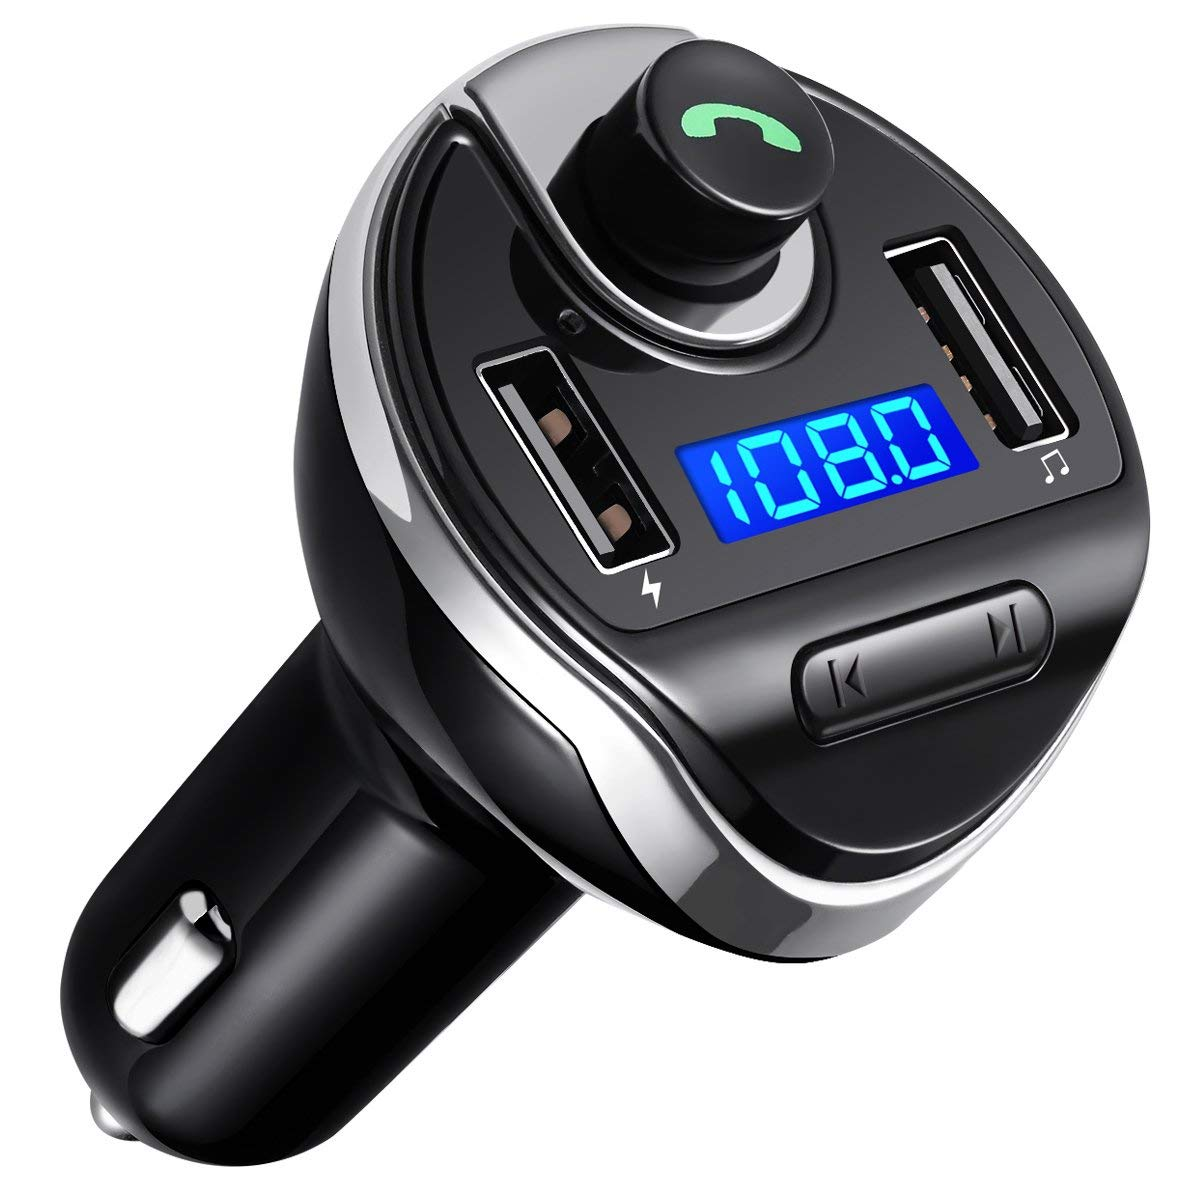 Bluetooth FM Transmitter, Jelly Comb Wireless In-Car FM Transmitter Radio Adapter Car Kit, Universal Car Charger with Dual USB Charging Ports, Hands Free Calling for iPhone, Samsung, etc (Black)